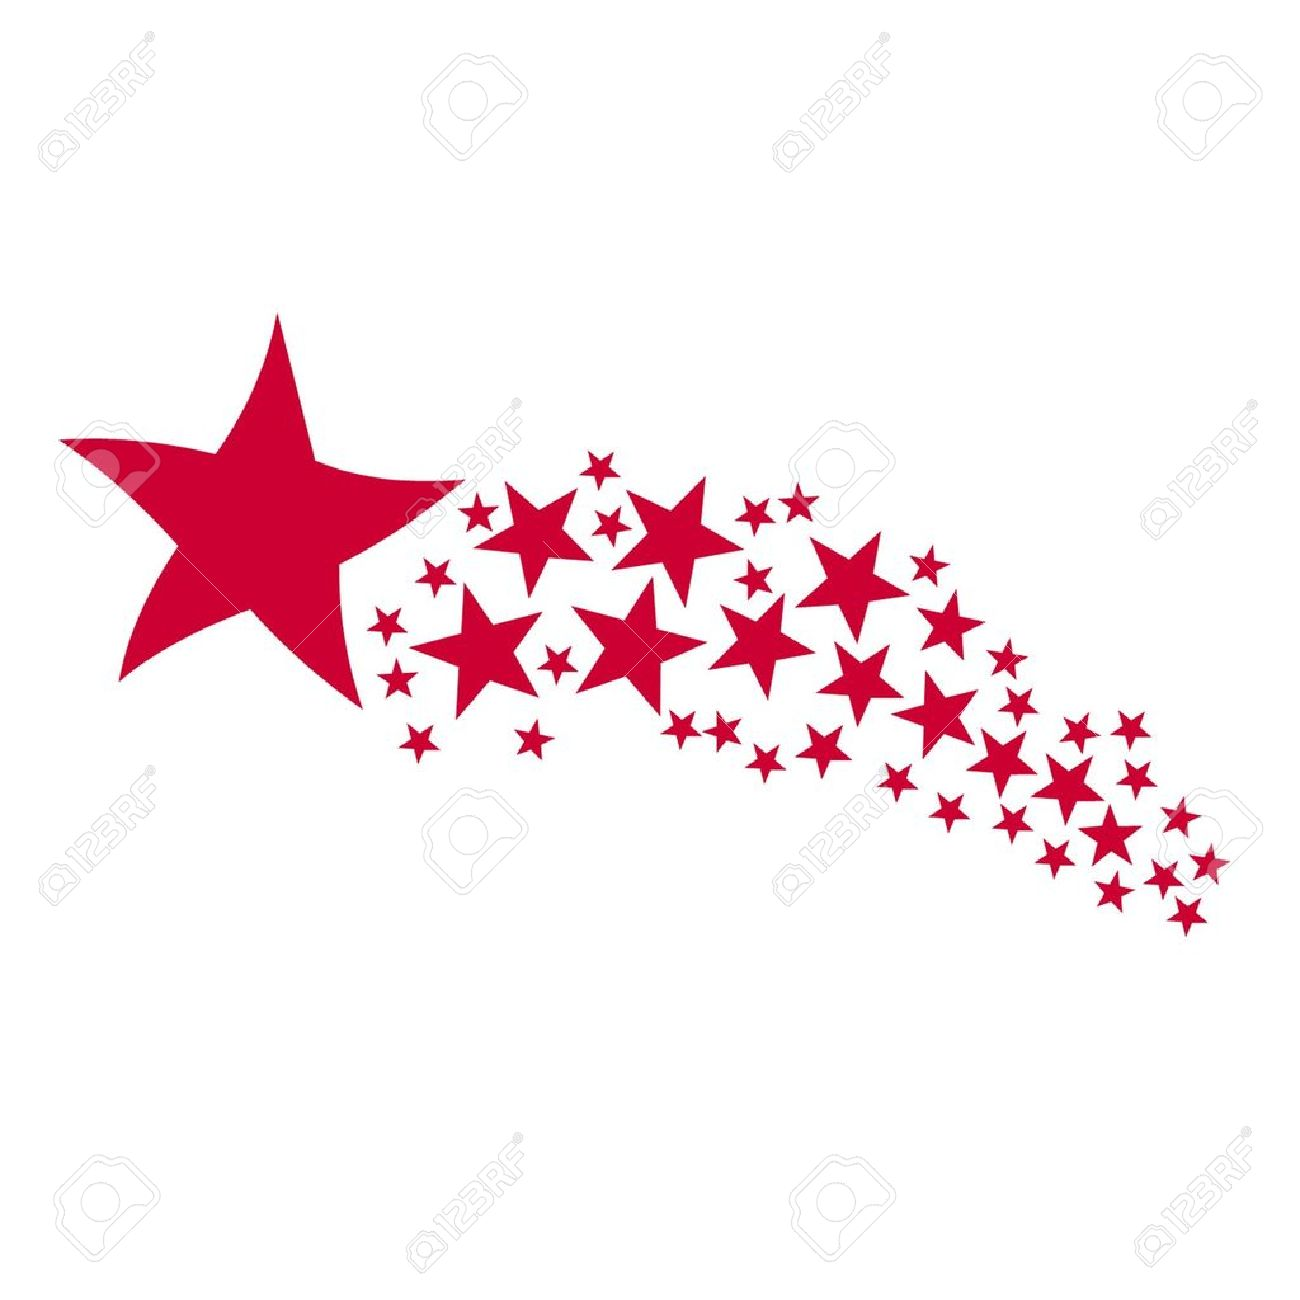 Shooting Star clipart colorful Shooting Star  stars Clipart